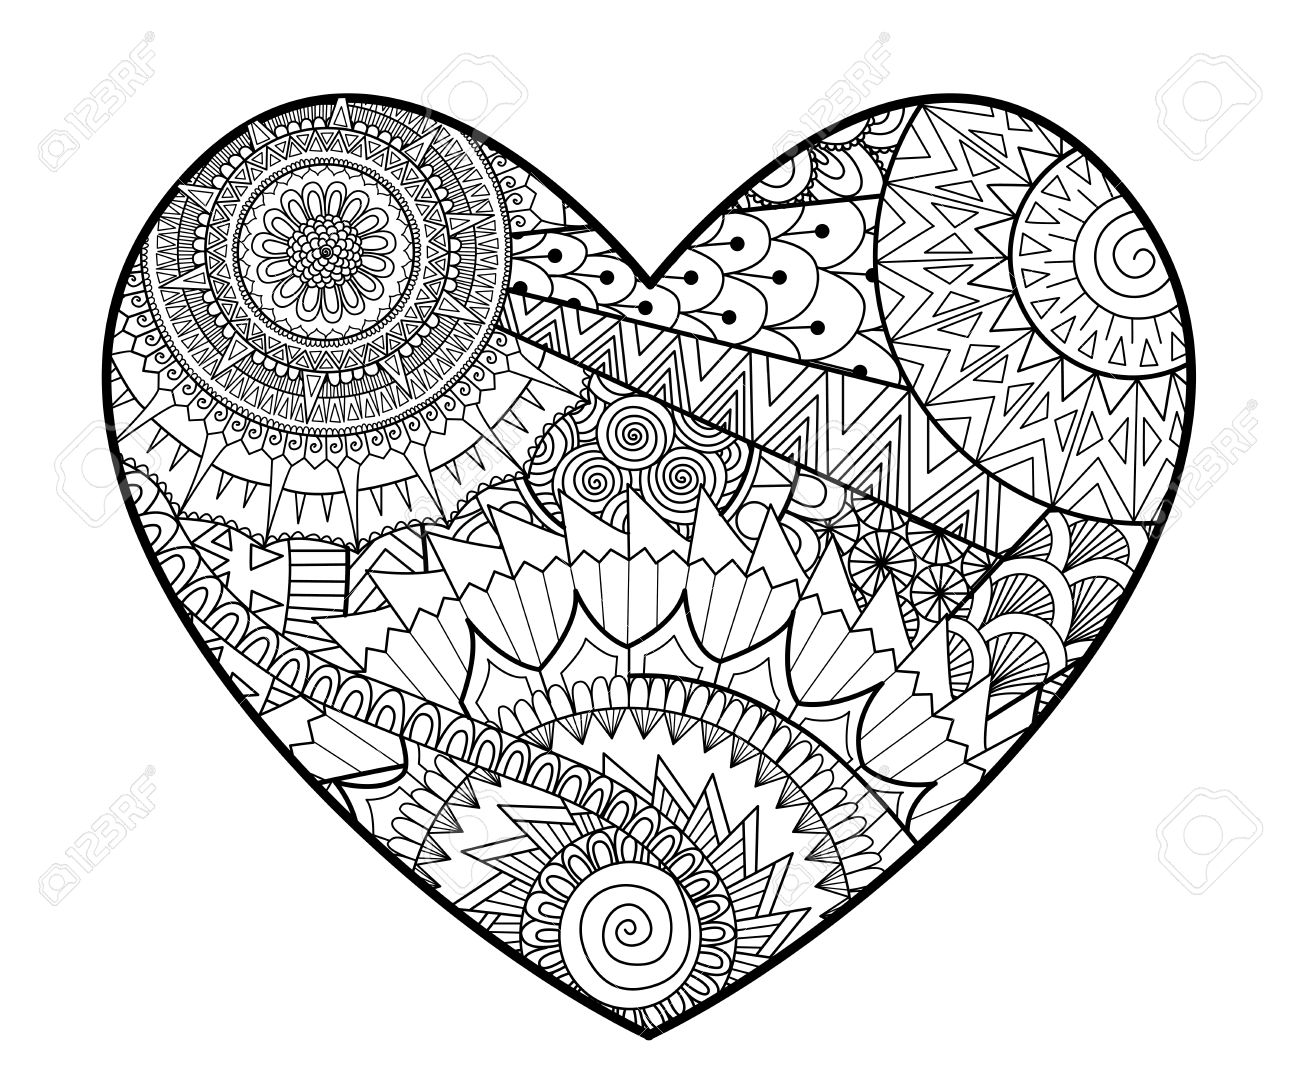 zendoodle in heart shape for coloring books for adult , cards,..